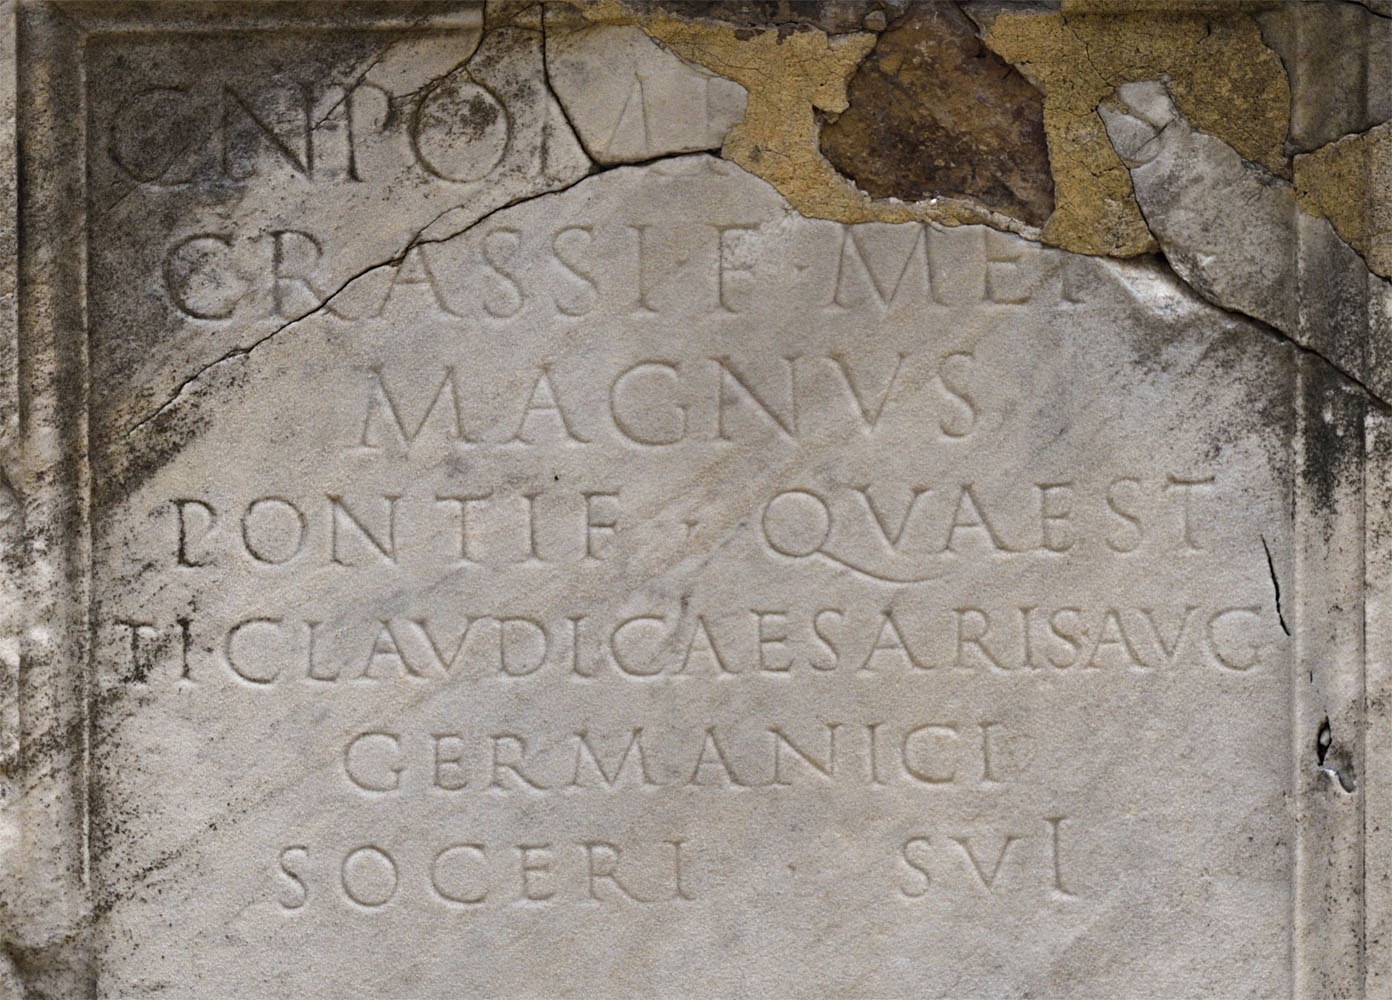 Funerary altar of Gn. Pompeius Magnus, the son-in-law of emperor Claudius. CIL VI 31722 = ILS. 955. Marble. 47 CE.  Inv. No. 78163. Rome, Roman National Museum, Baths of Diocletian